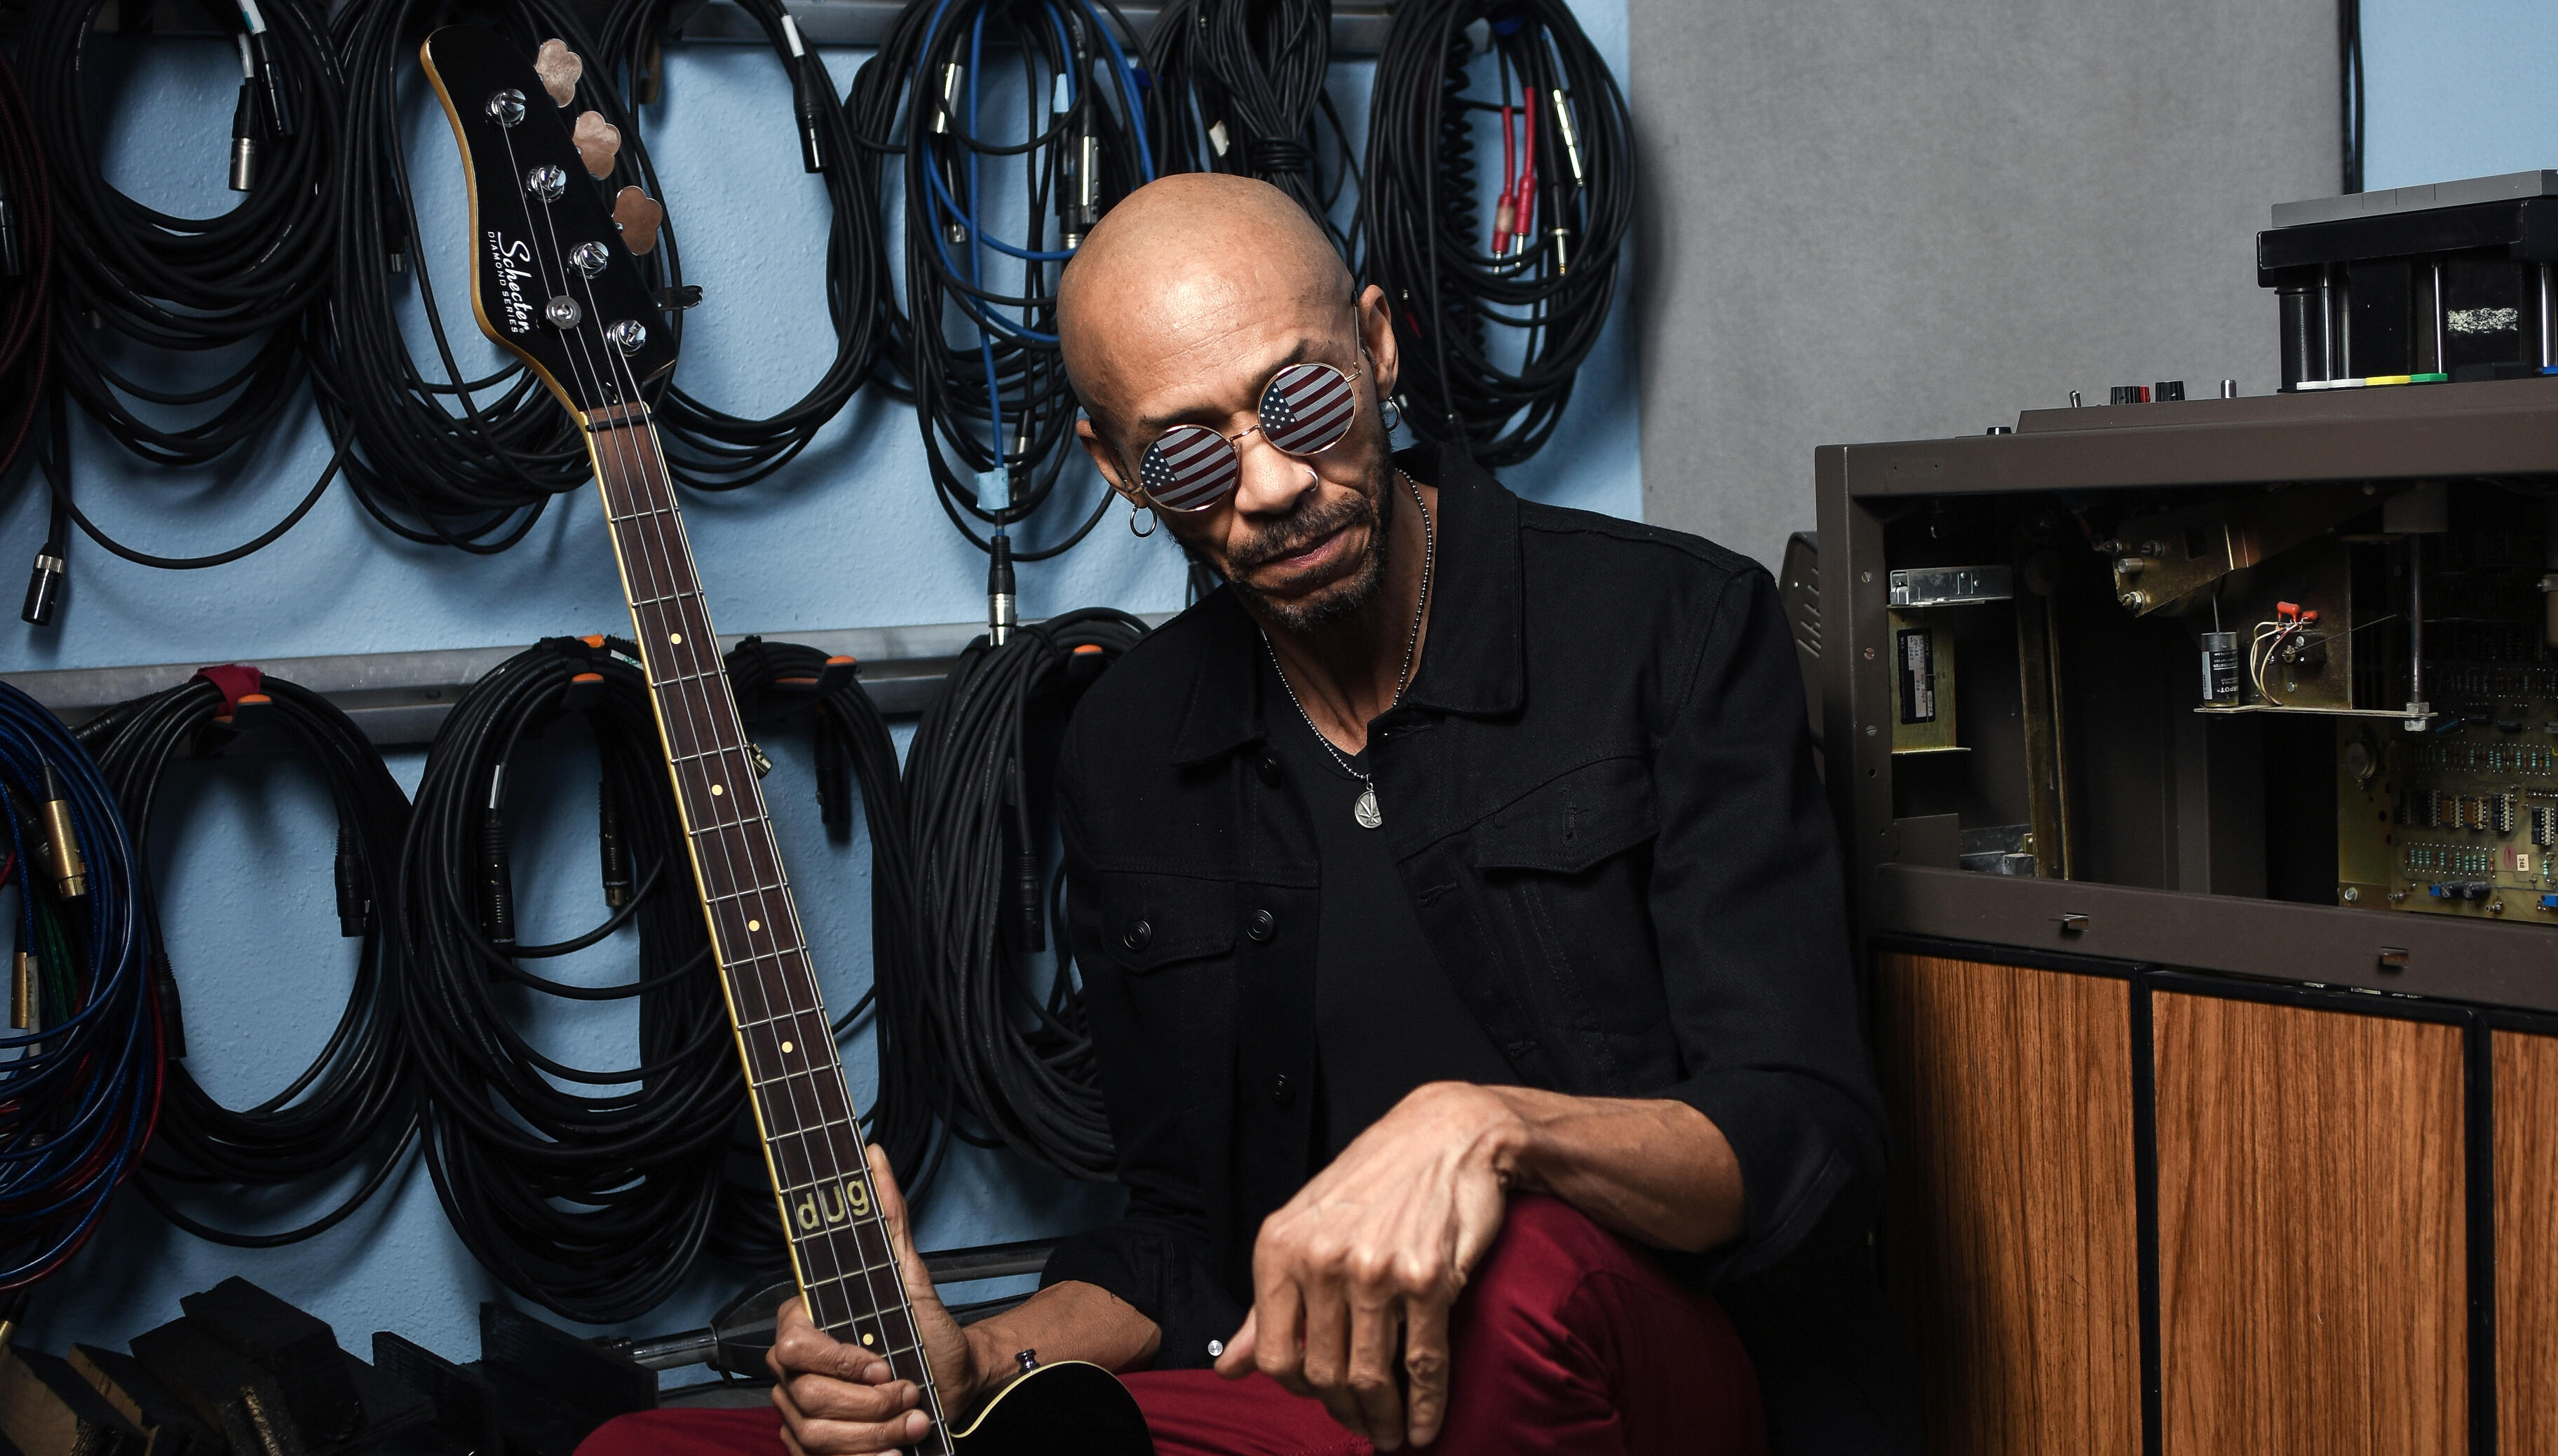 Doug Pinnick Reveals His Songwriting Breakthrough With KXM